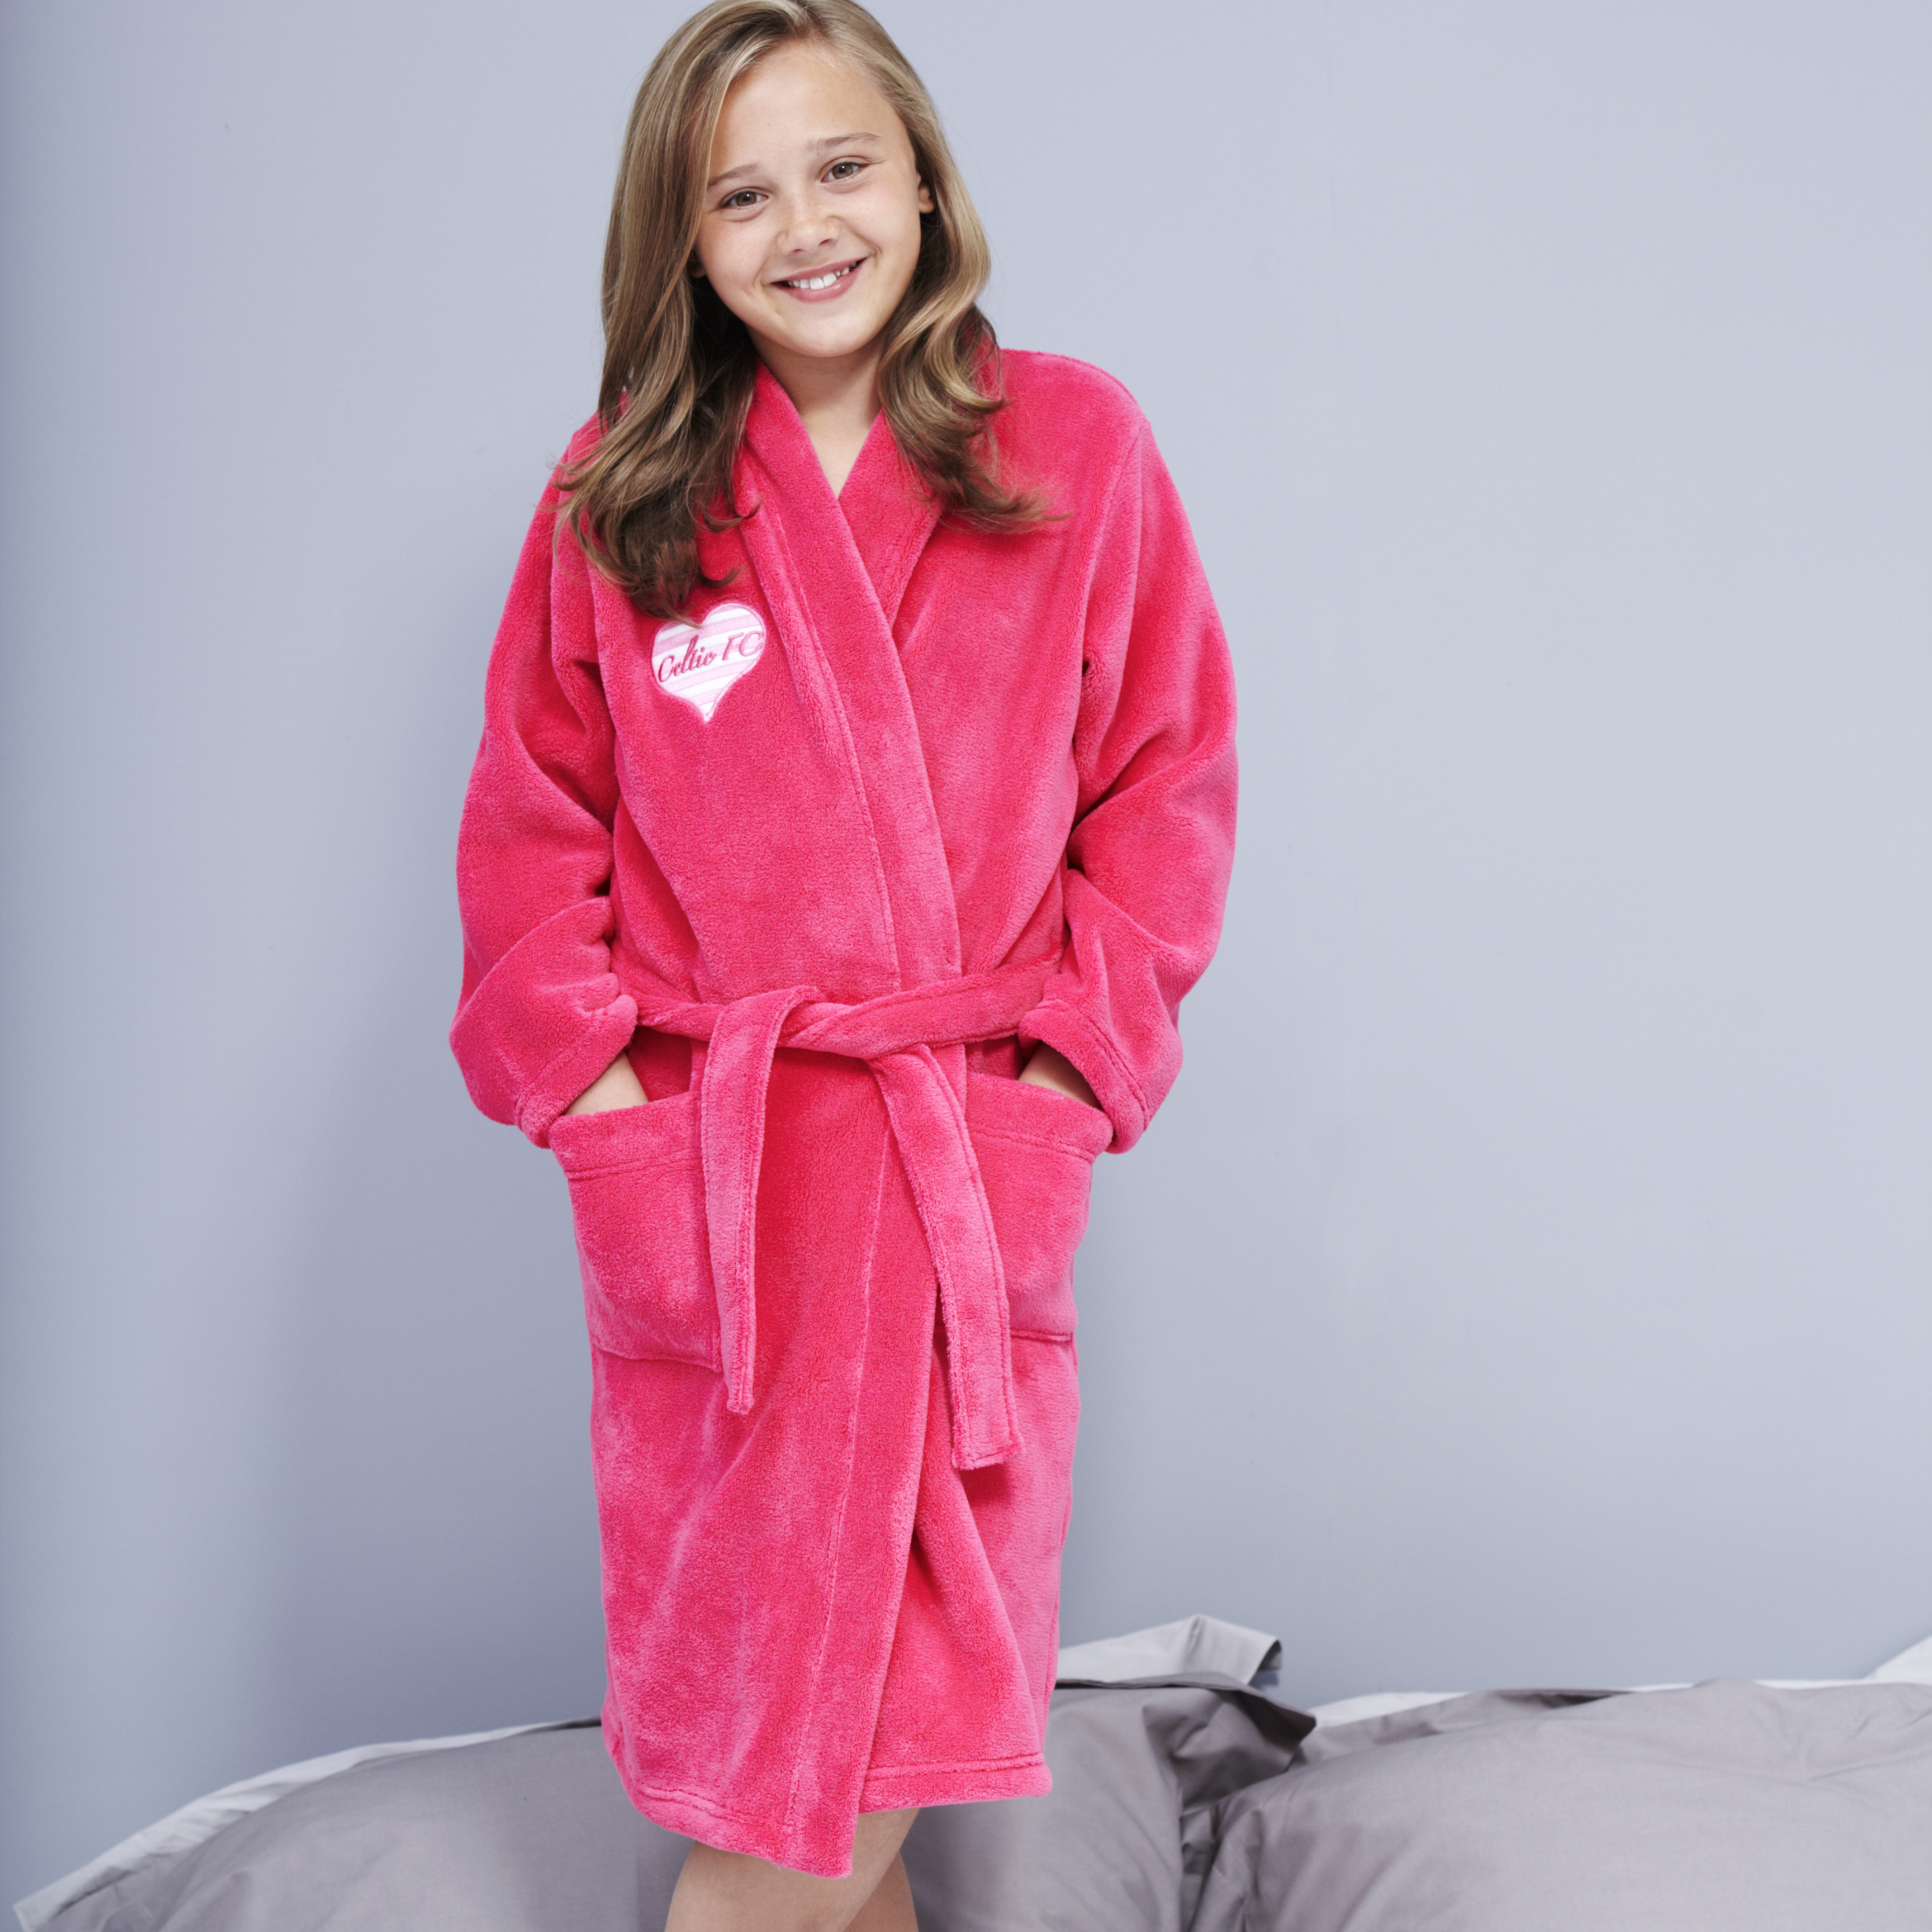 Celtic Heart Robe - Hot Pink - Girls